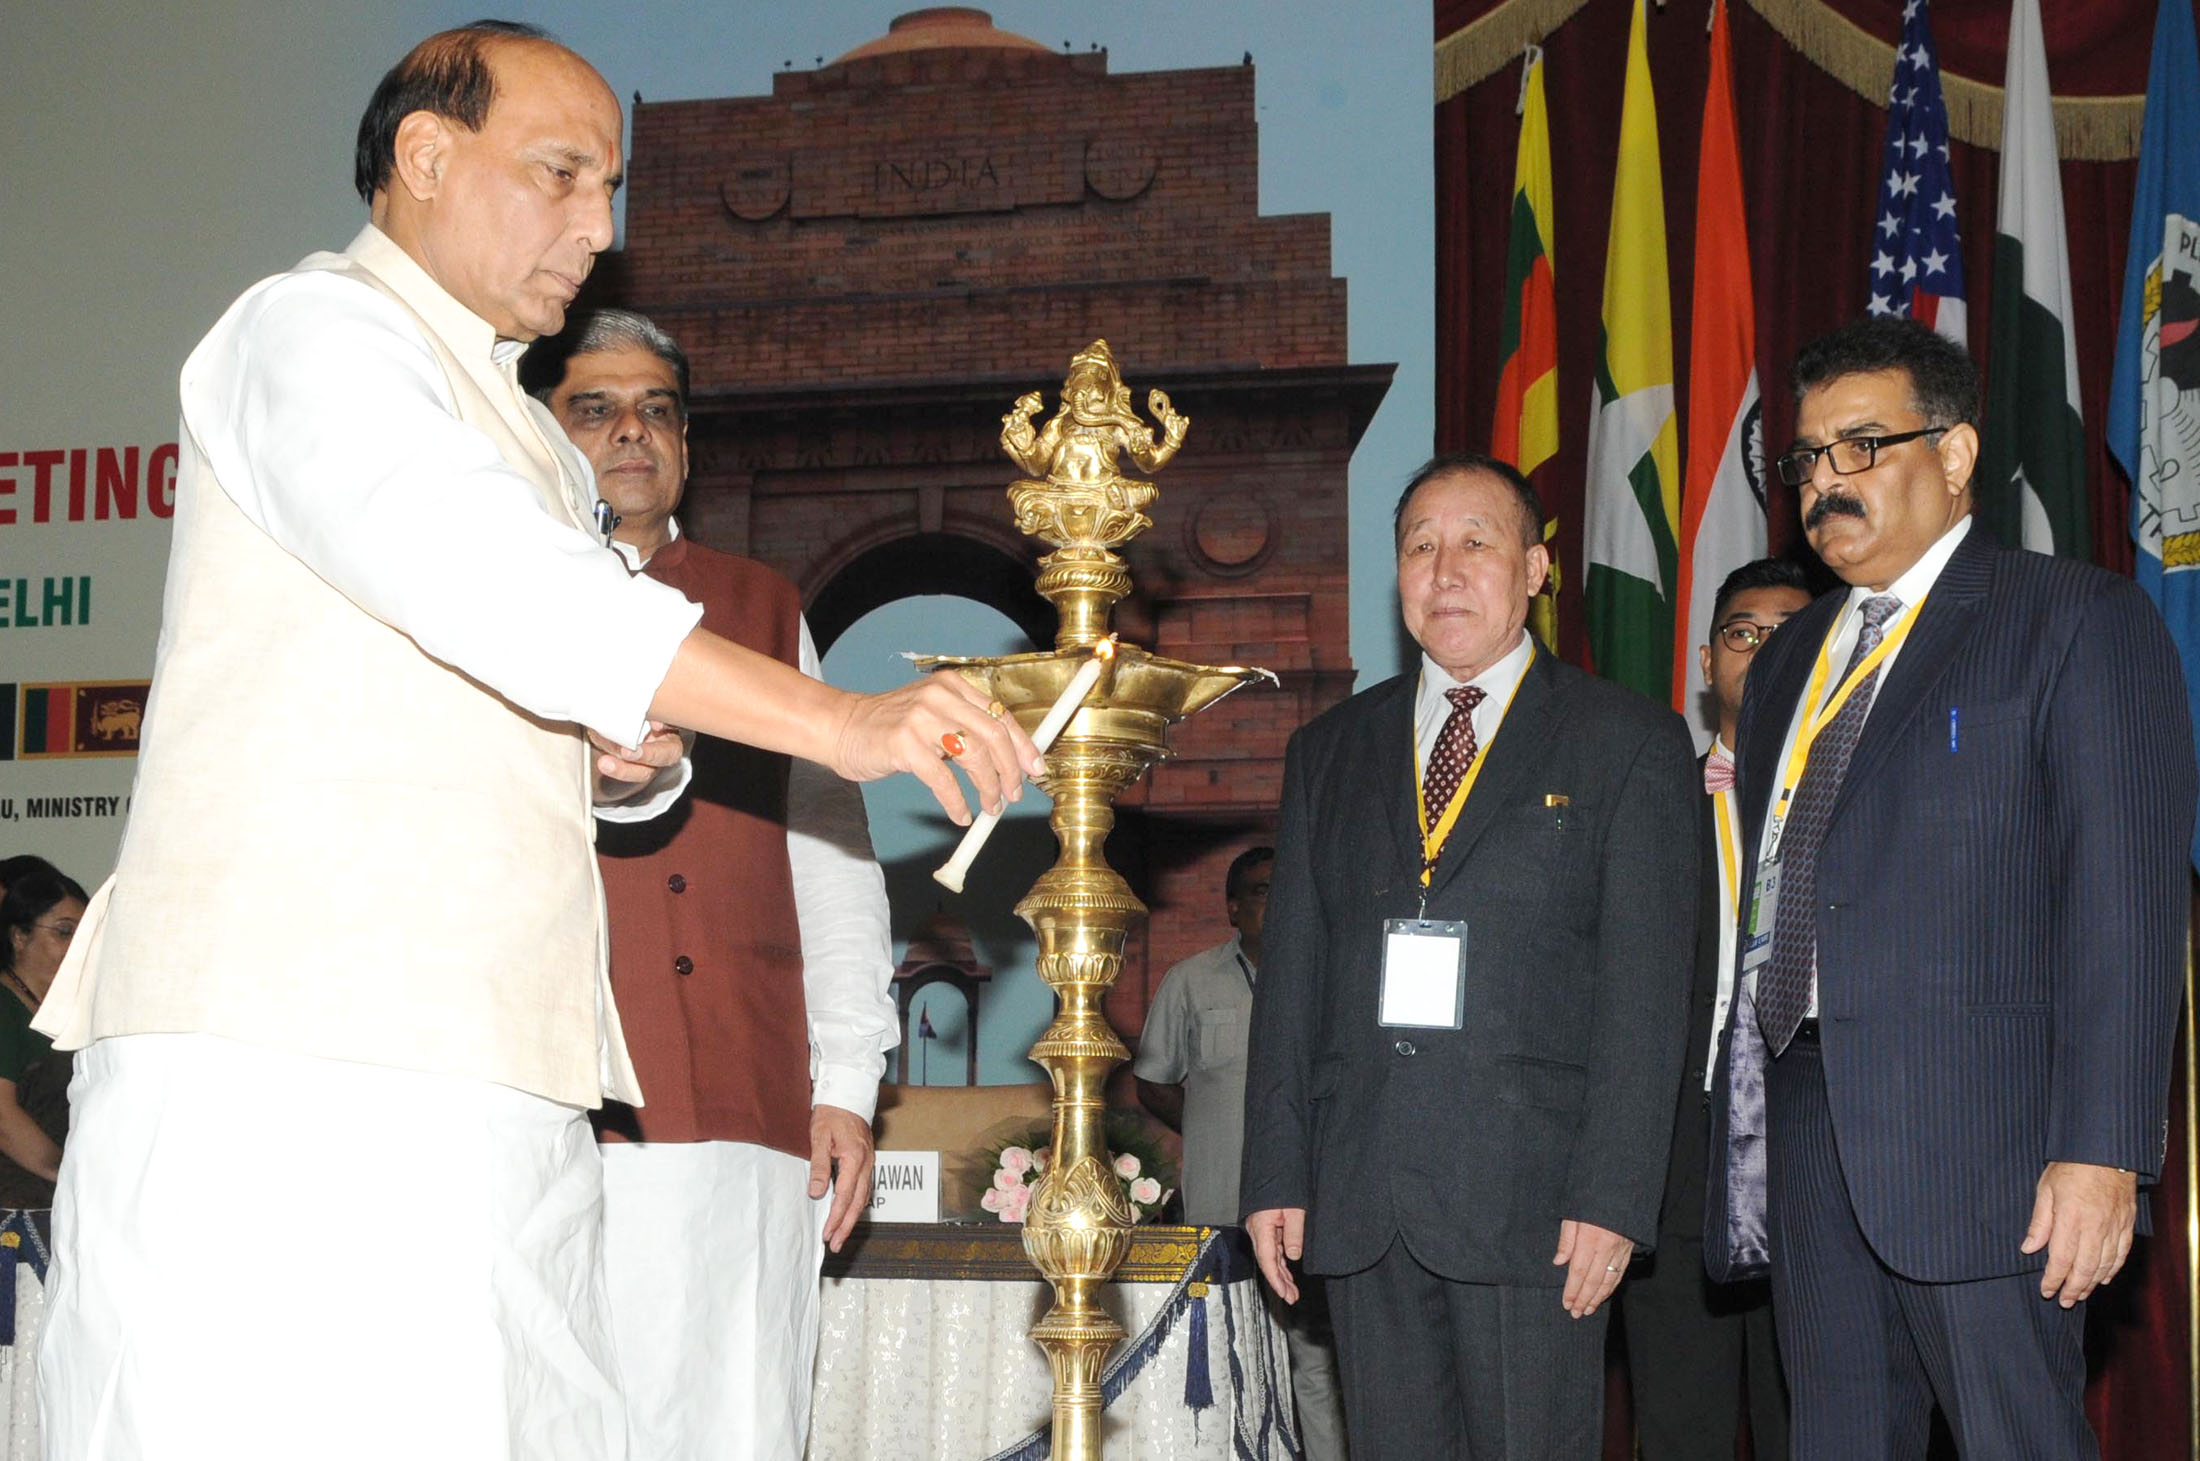 The Union Home Minister, Shri Rajnath Singh lighting the lamp to inaugurate a three-day workshop on Sub-Regional Drug 'Focal Point Meeting and DDR Expert Group Consultation, South Asia under Colombo Plan Drug Advisory Programme', in New Delhi on September 09, 2015.   The Minister of State for Home Affairs, Shri Haribhai Parthibhai Chaudhary and other dignitaries are also seen.